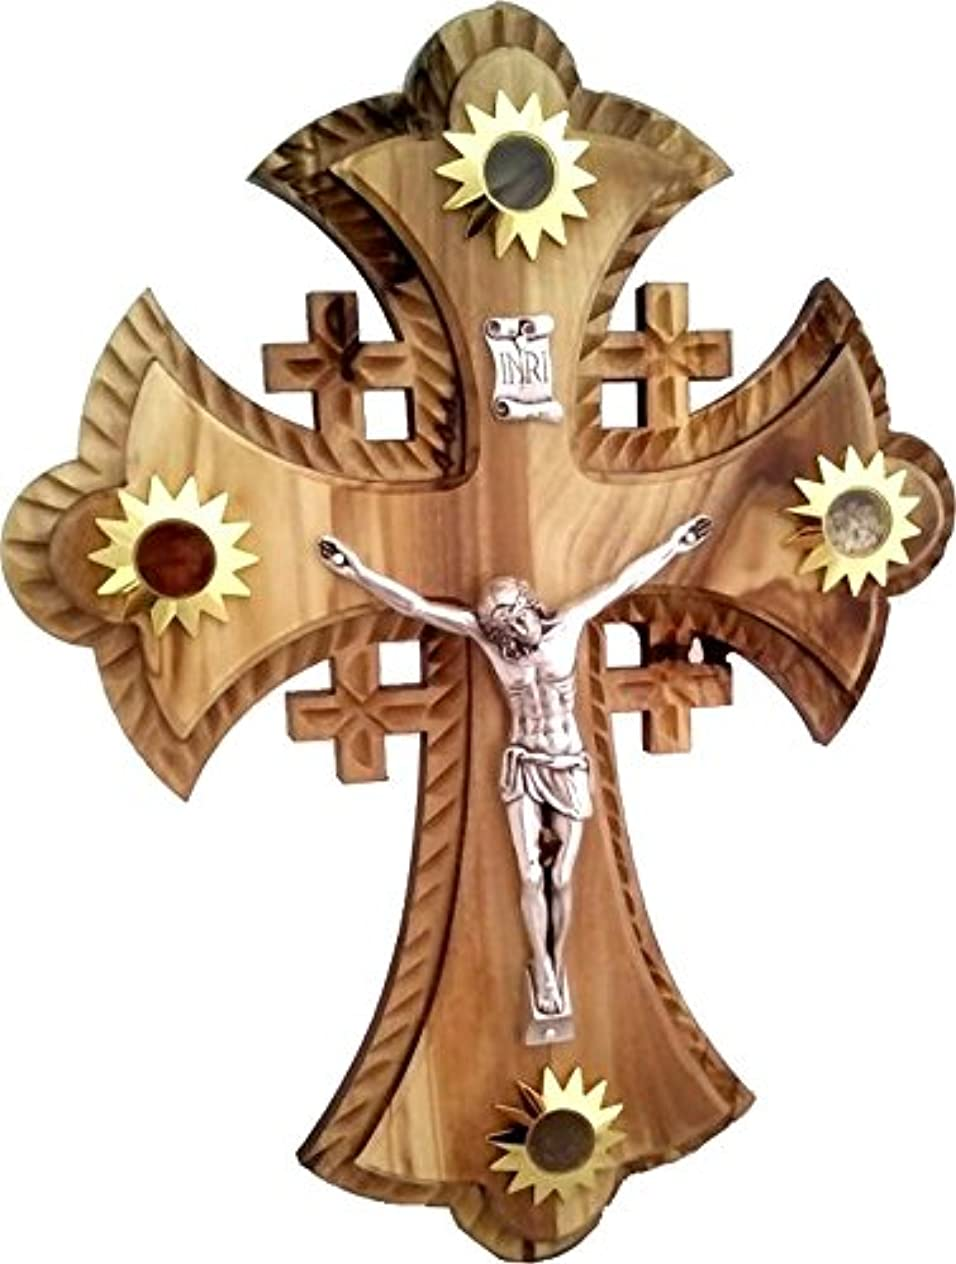 に債権者習熟度2層のOlivewood Crucifix With Holy Landサンプル – Essences